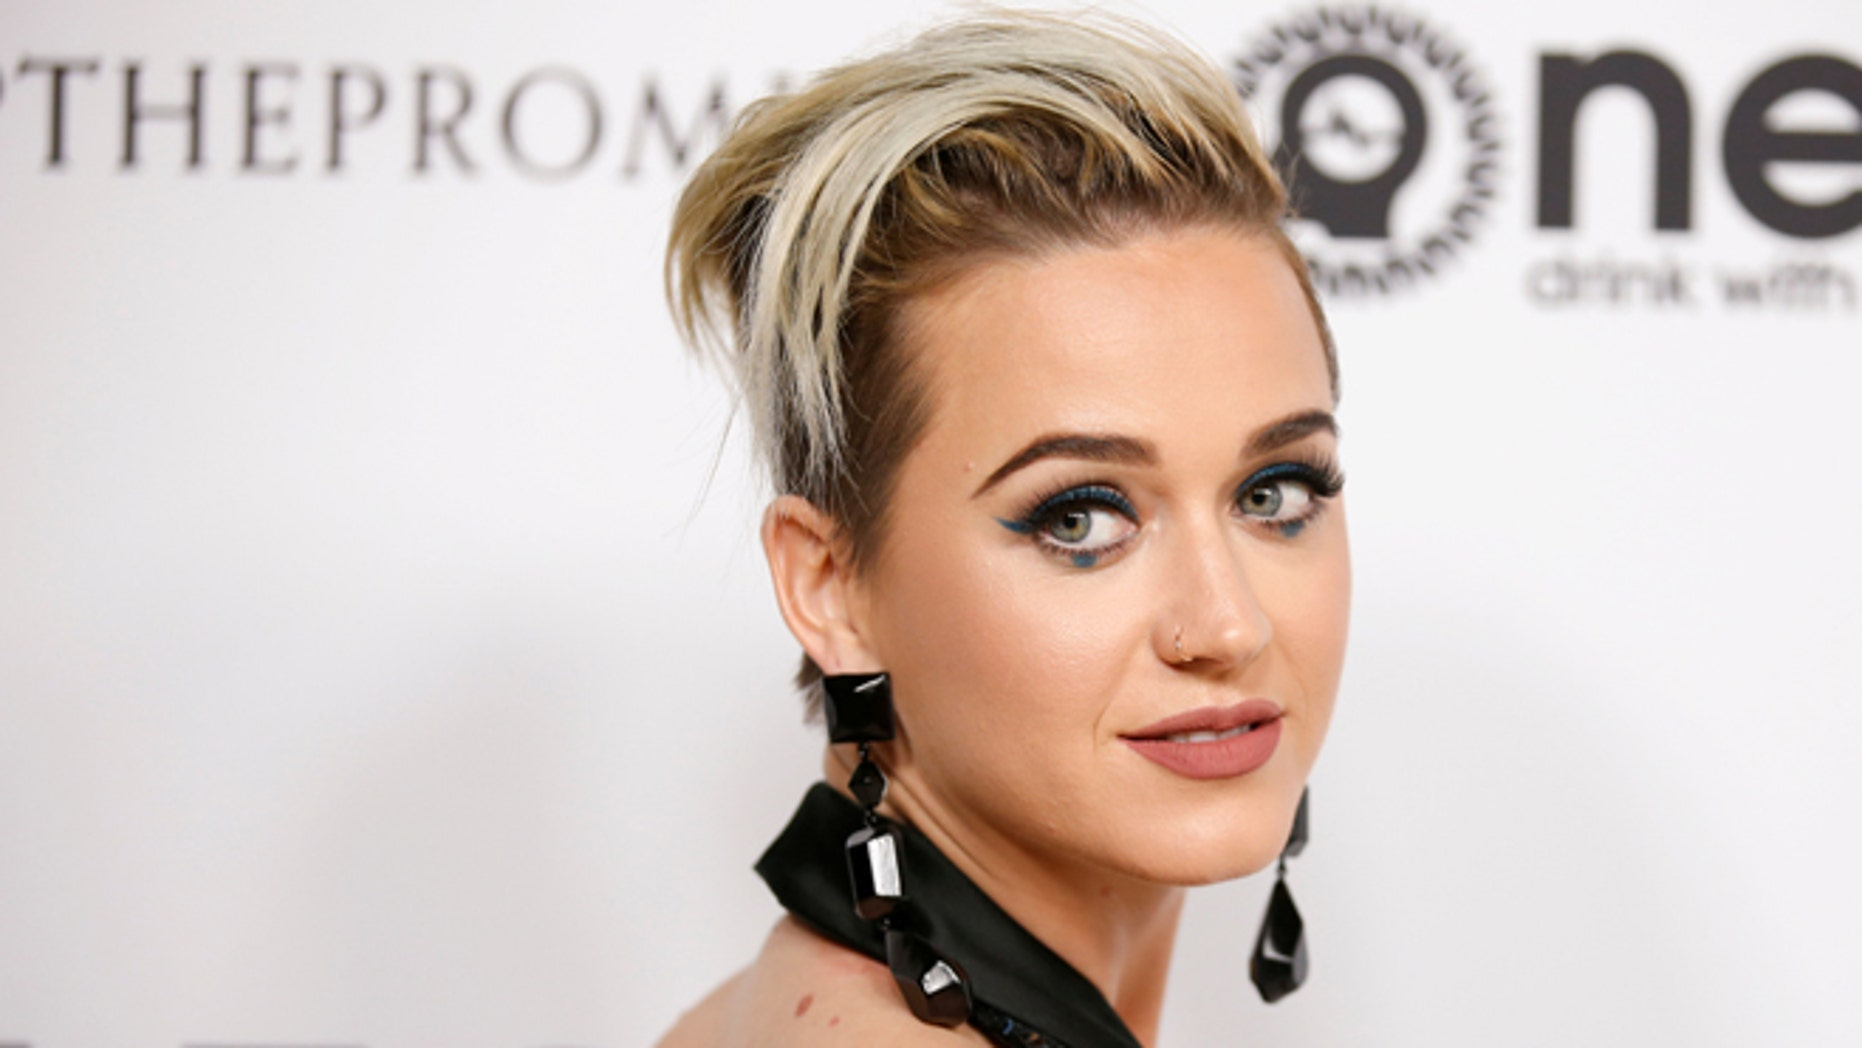 Katy Perry revealed she has had suicidal thoughts.